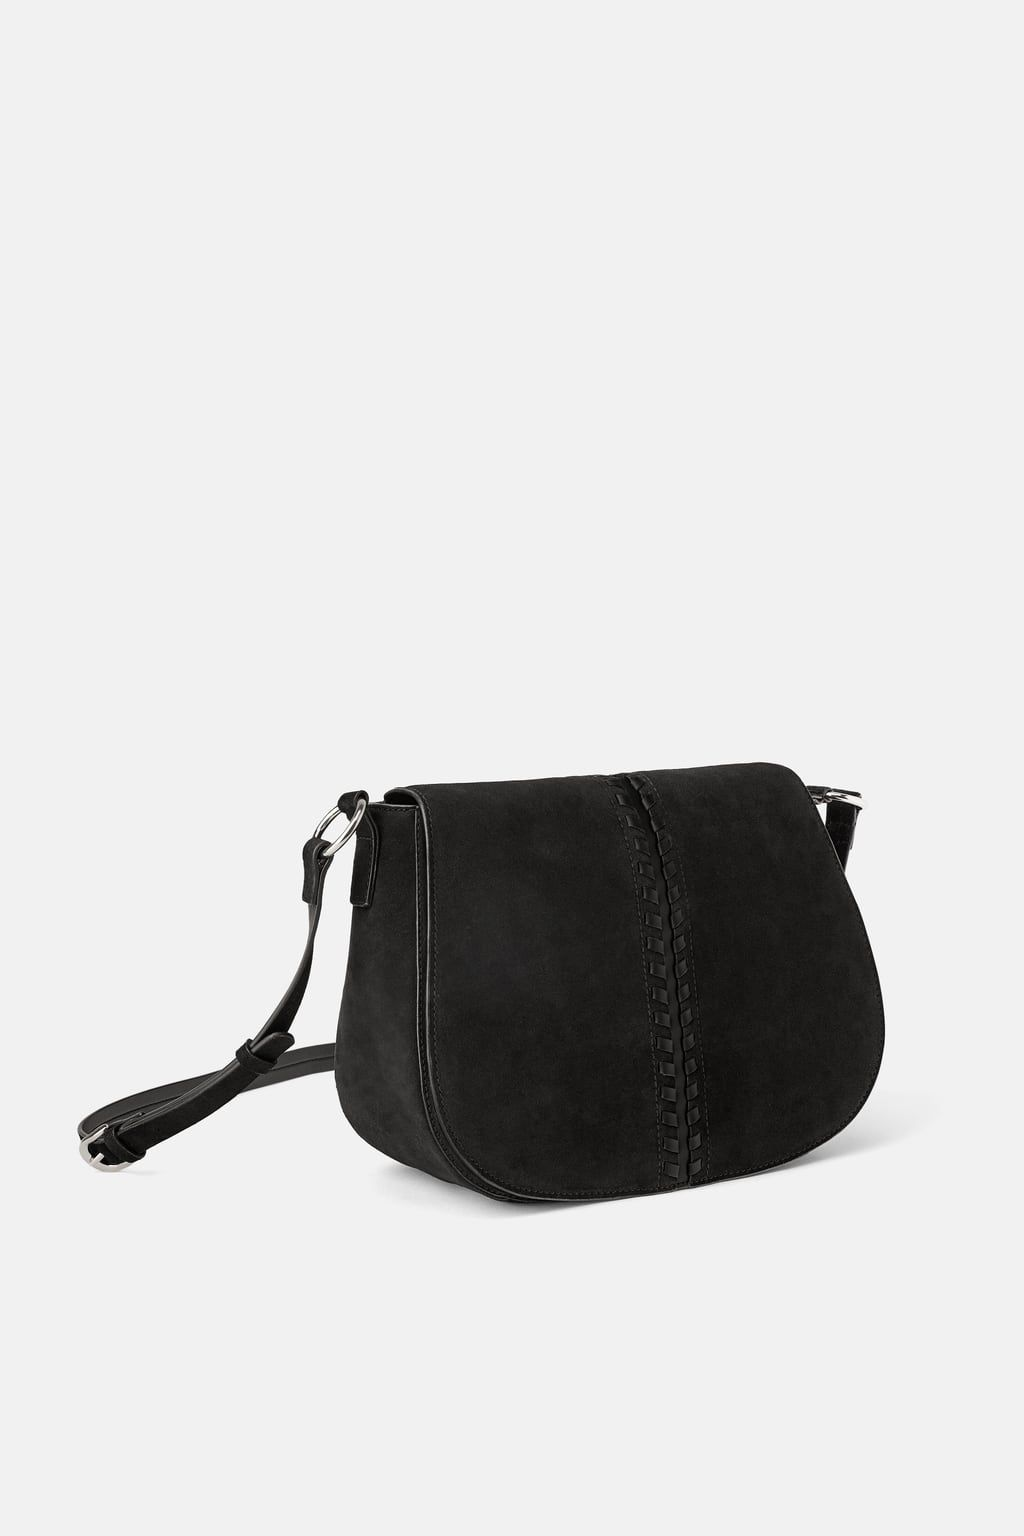 f19bfd0d29 Image 2 of LACED SPLIT SUEDE CROSSBODY BAG from Zara | Accessories ...